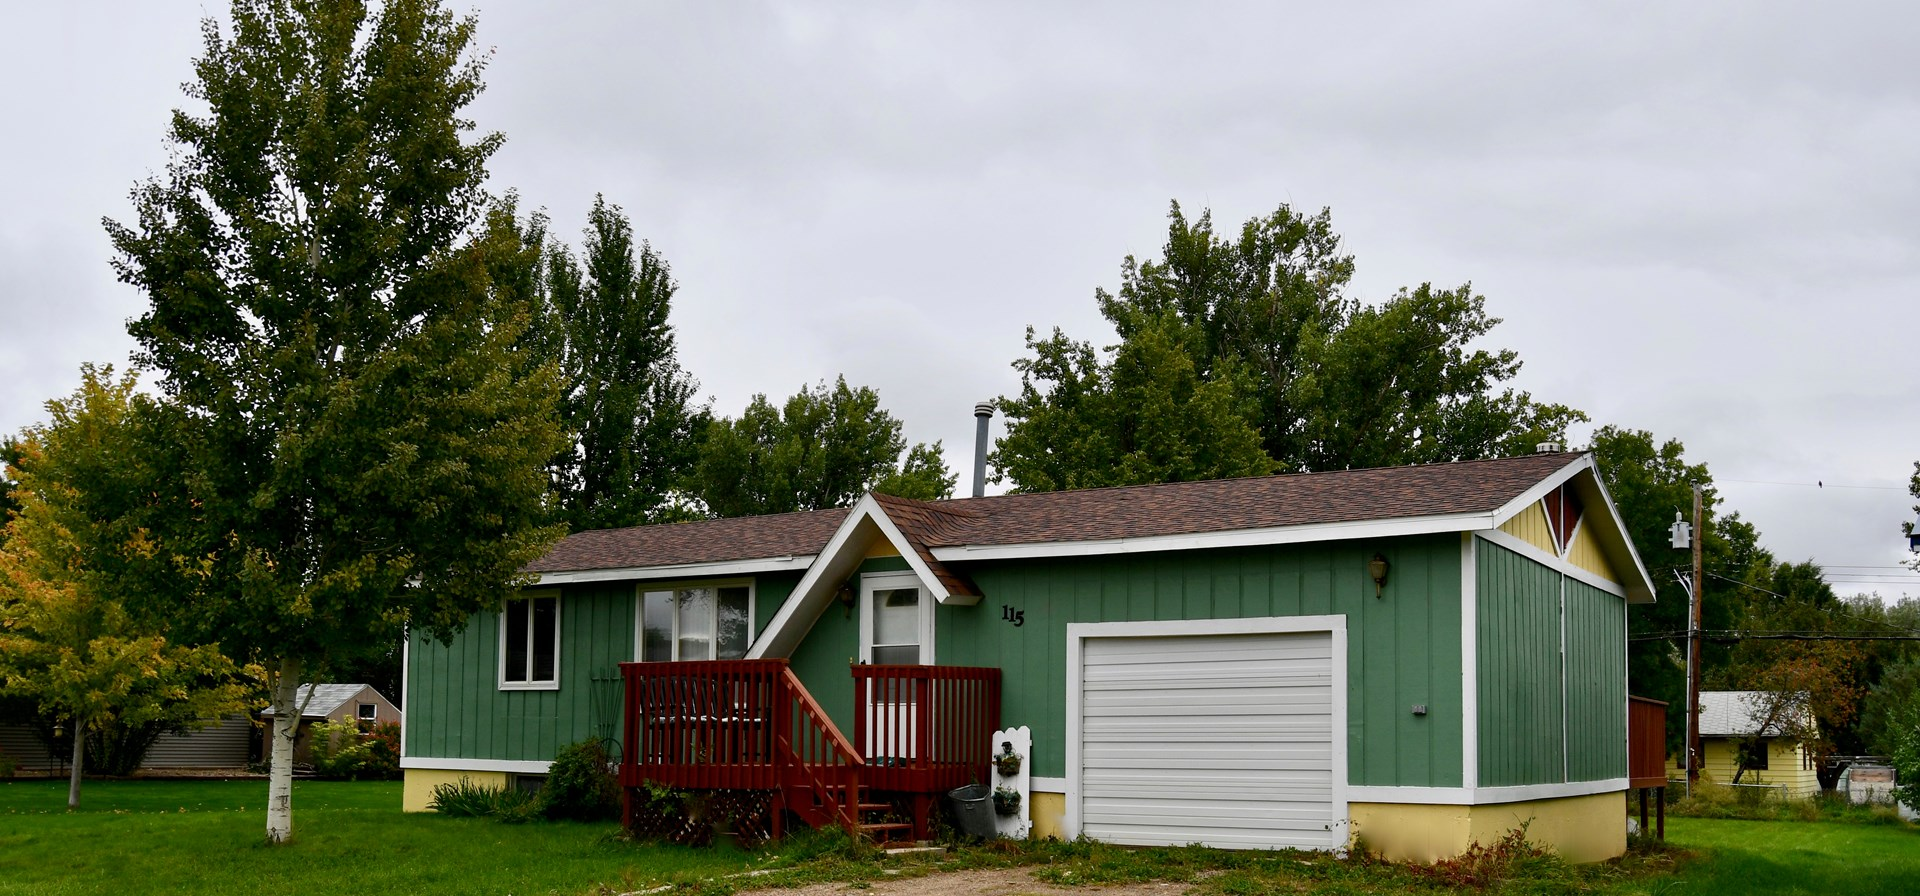 3 Bedroom 2 Bath, Garage, Double Car Steel Building